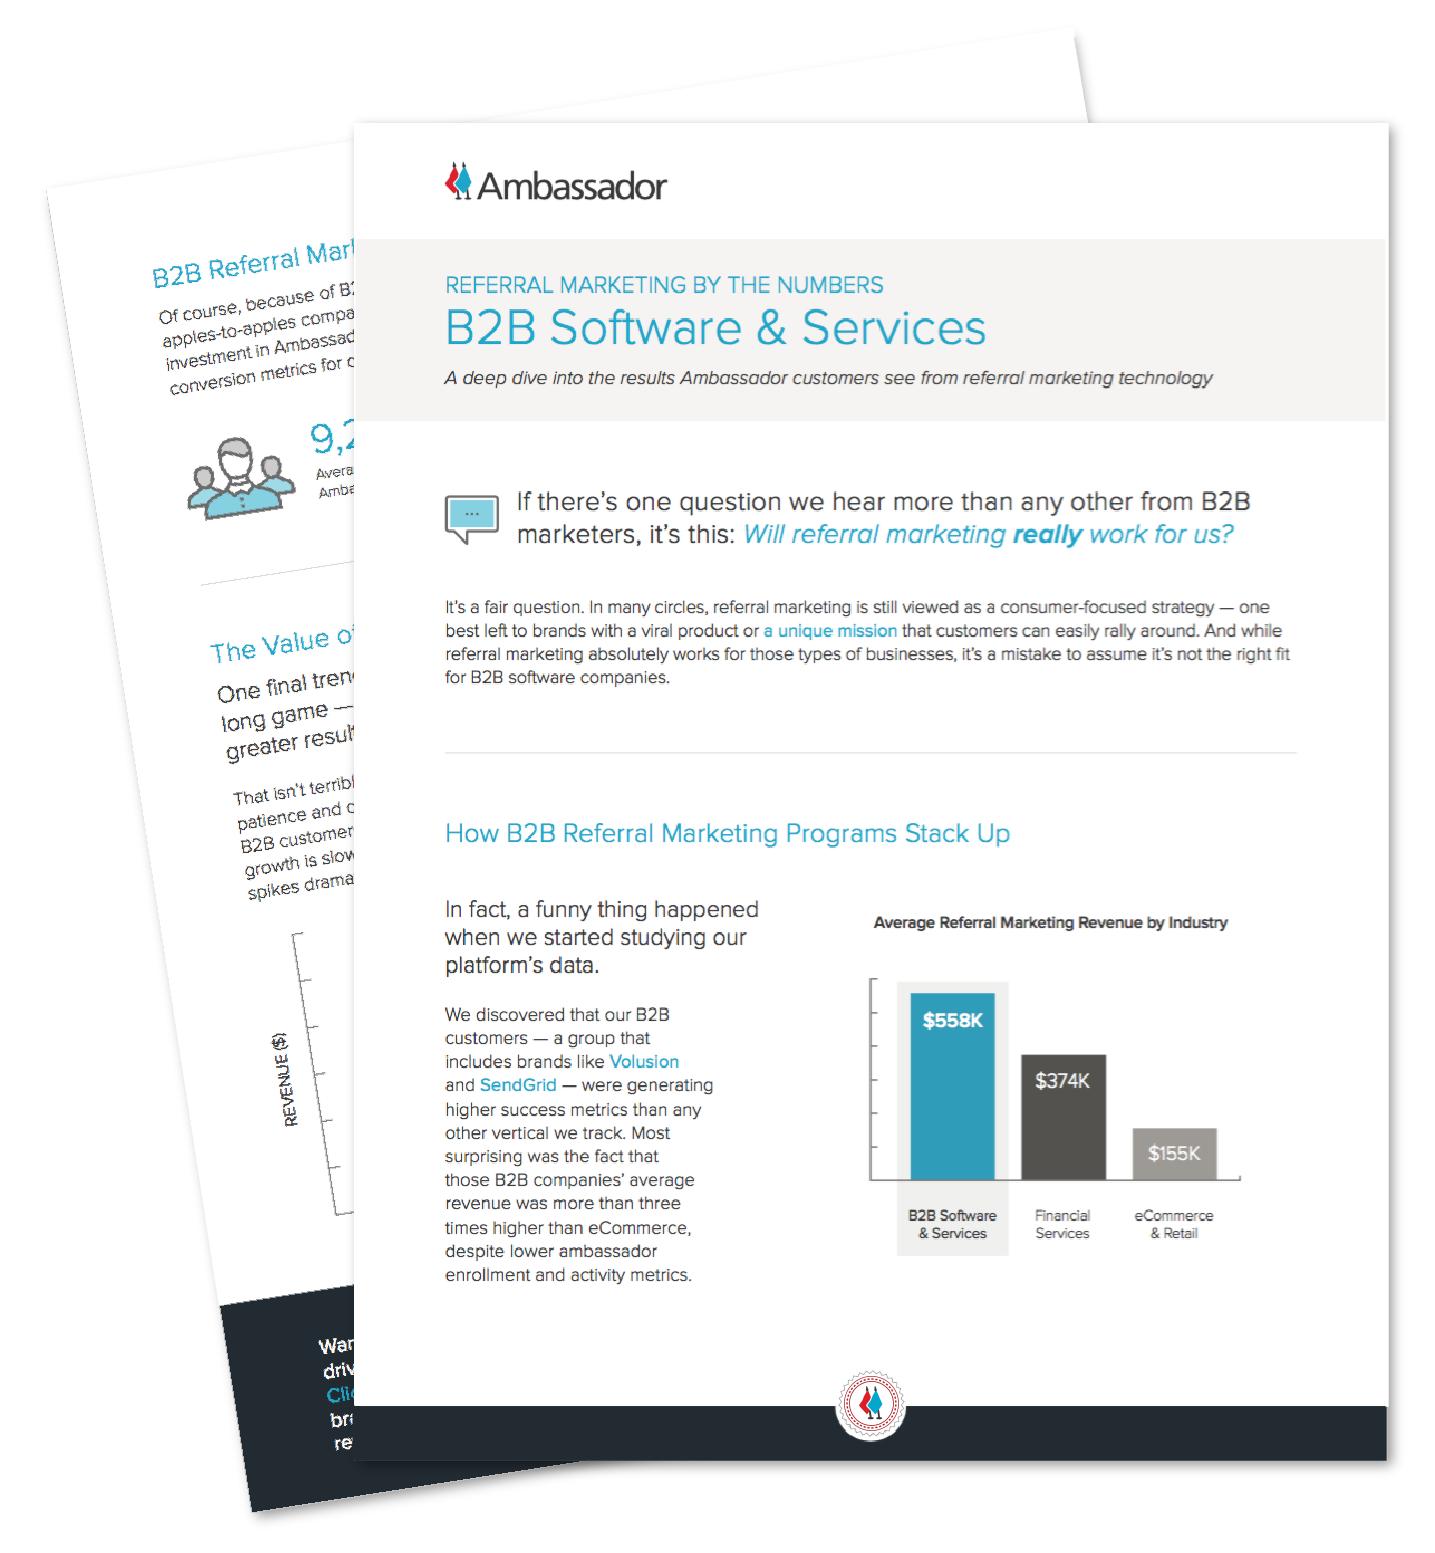 B2B Software & Services Referral Marketing Report